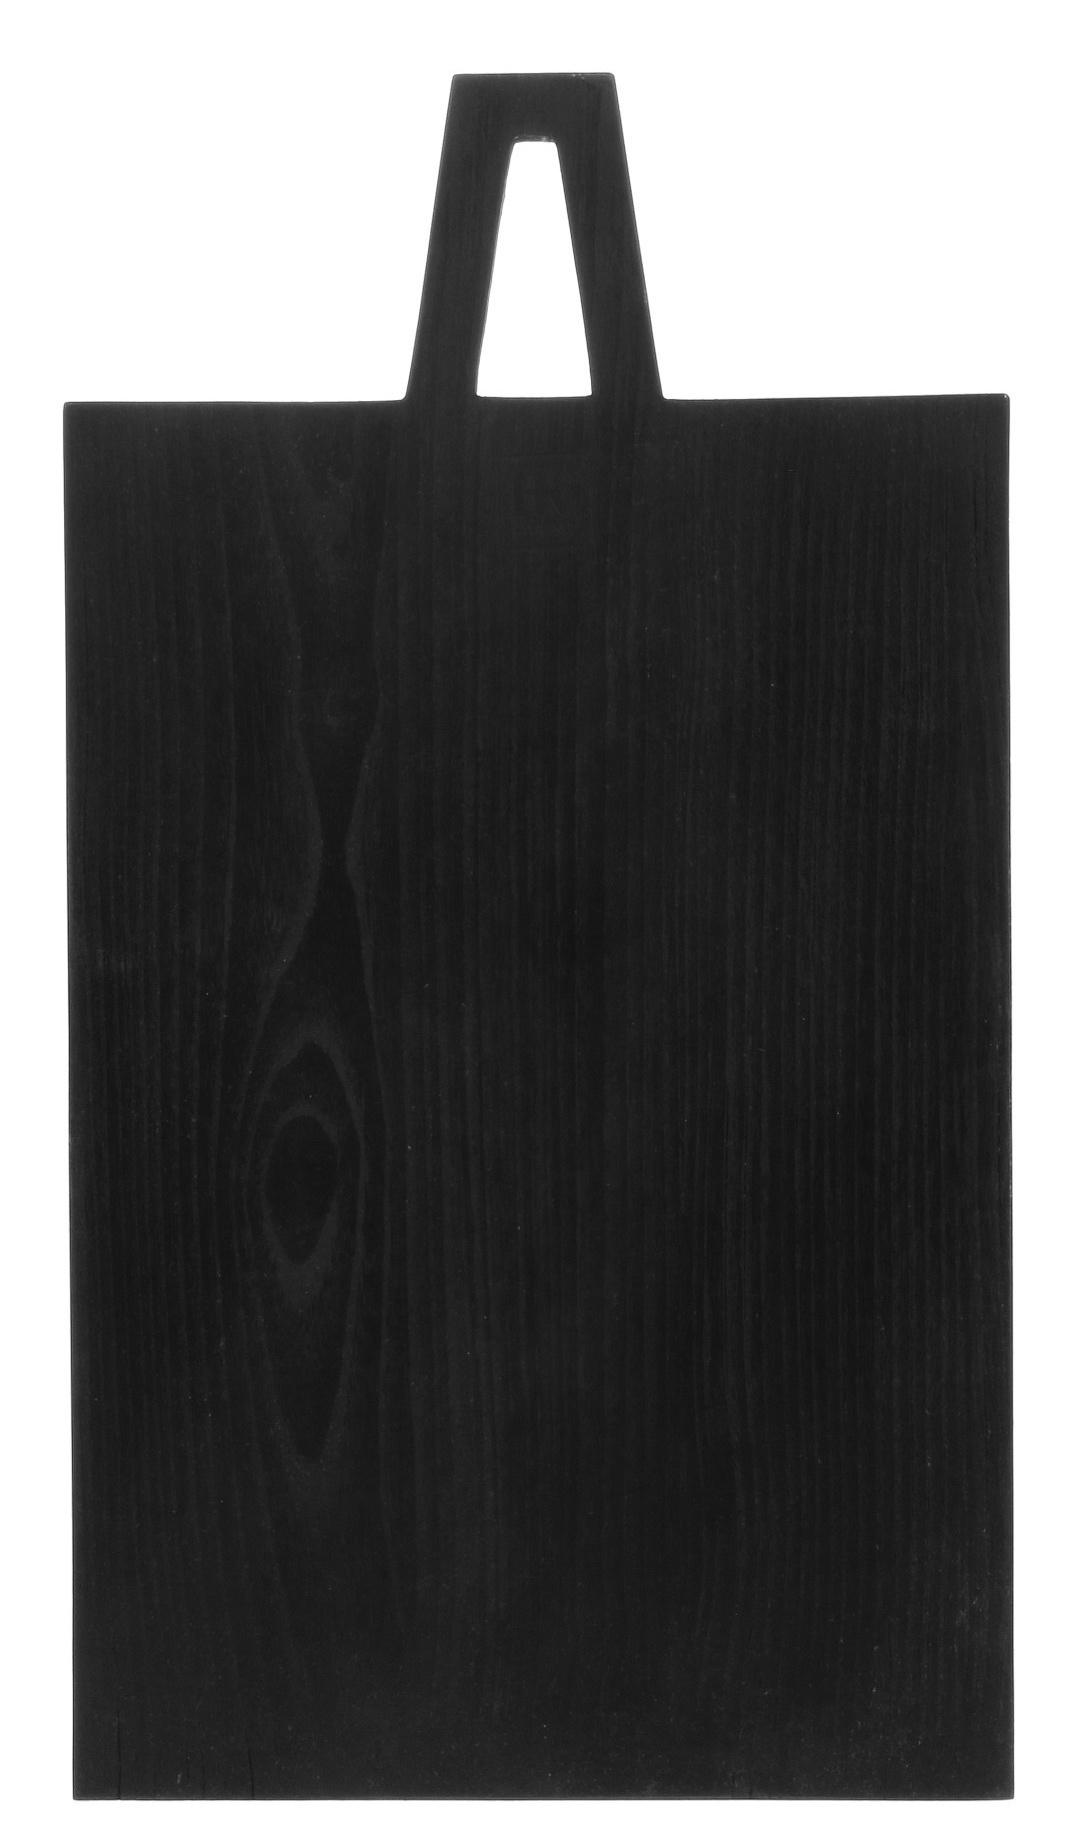 Broodplank black bread board square L-1